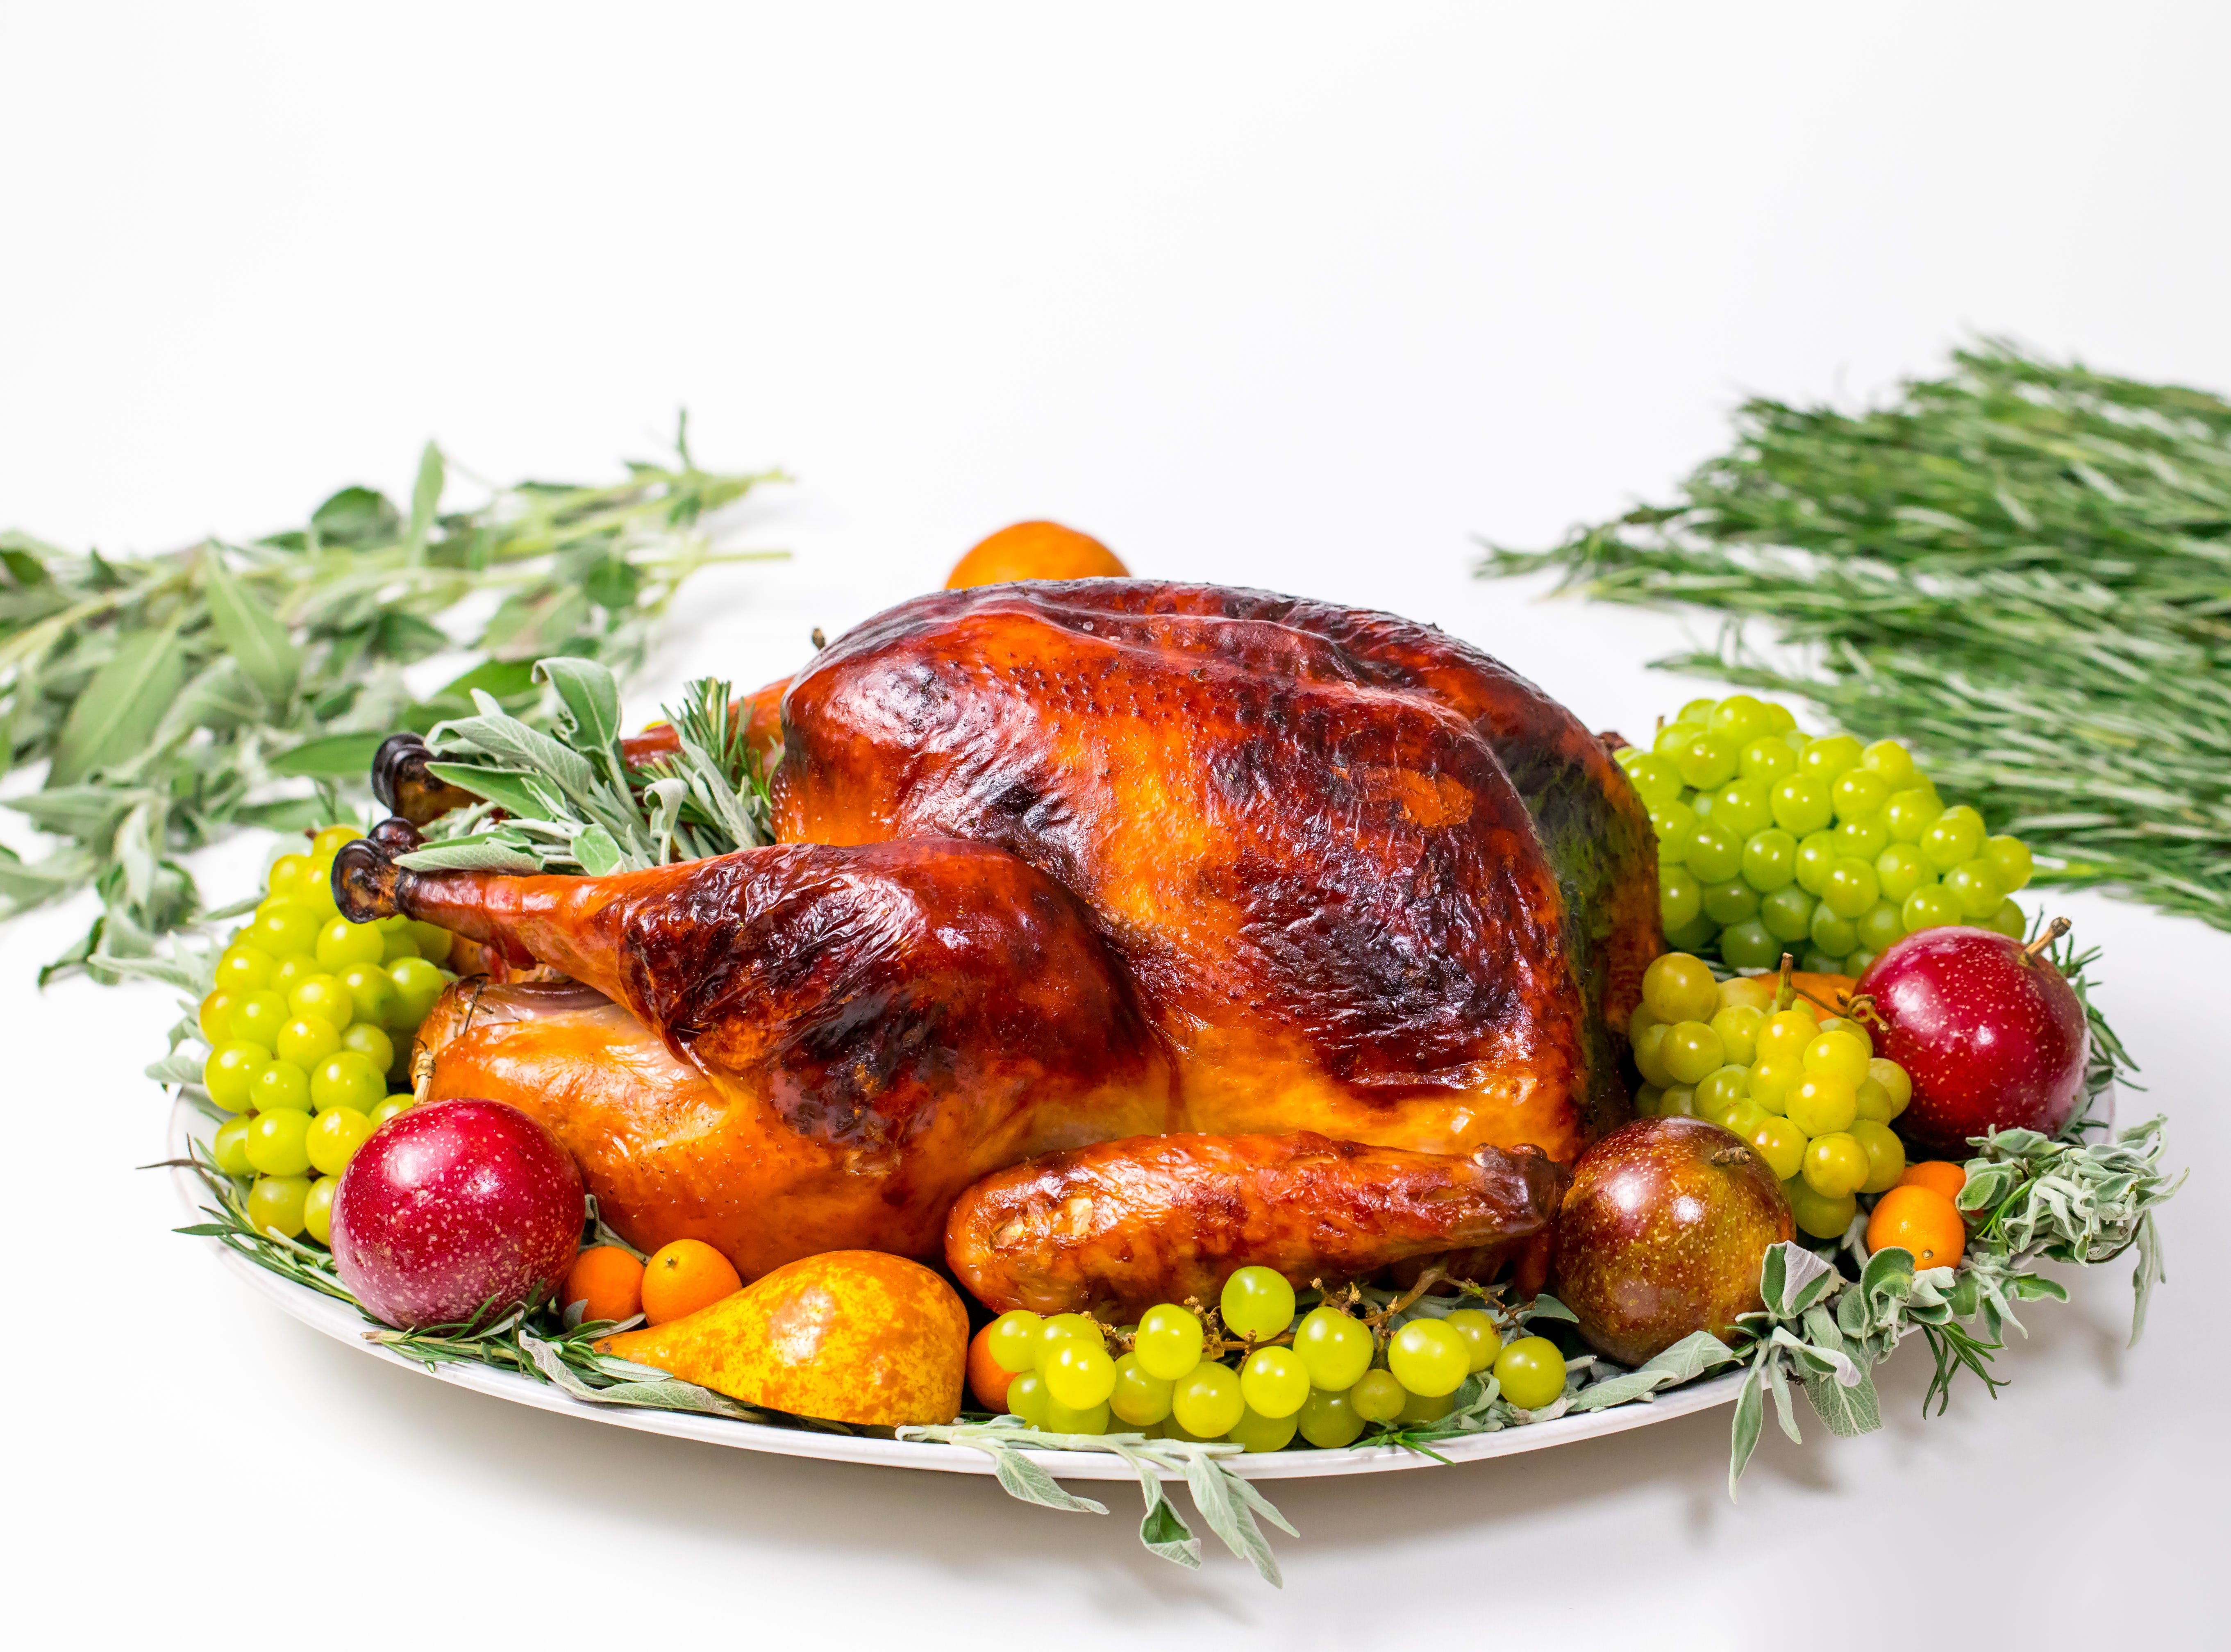 Golden, delicious and moist, this perfect roast turkey, inspired by Martha Stewart, will certainly turn heads this Thanksgiving. By using Martha Stewart's foolproof method for brining and roasting, your T-day turkey will be the showpiece it's supposed to be.